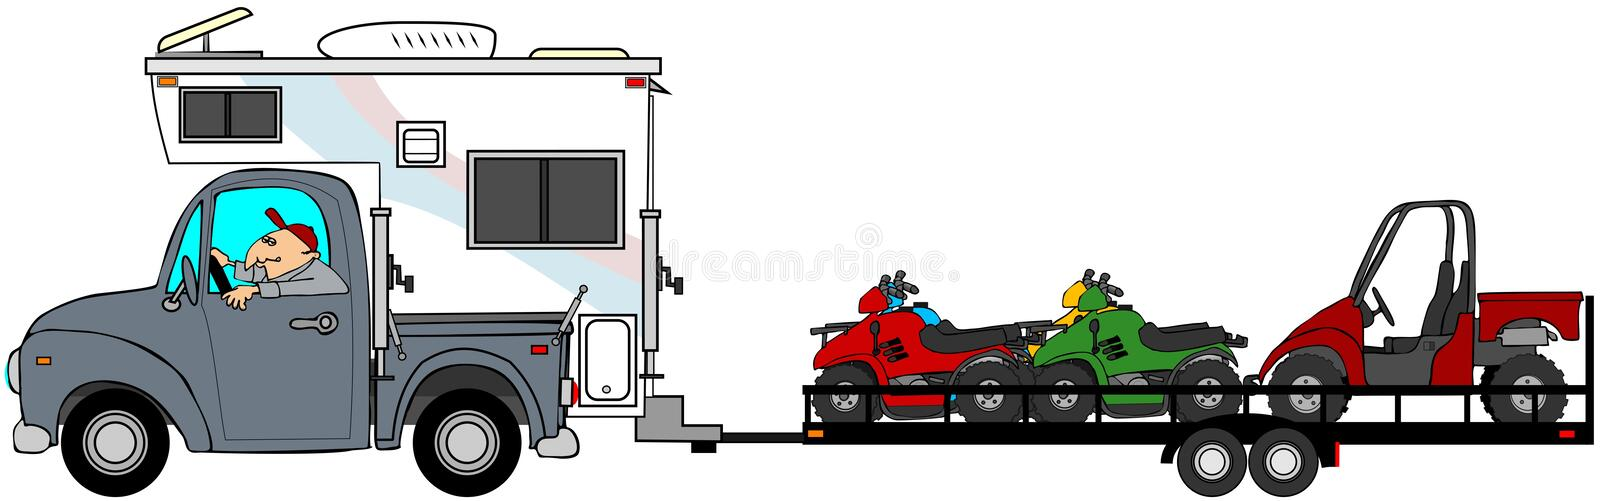 Truck with camper towing ATV's vector illustration